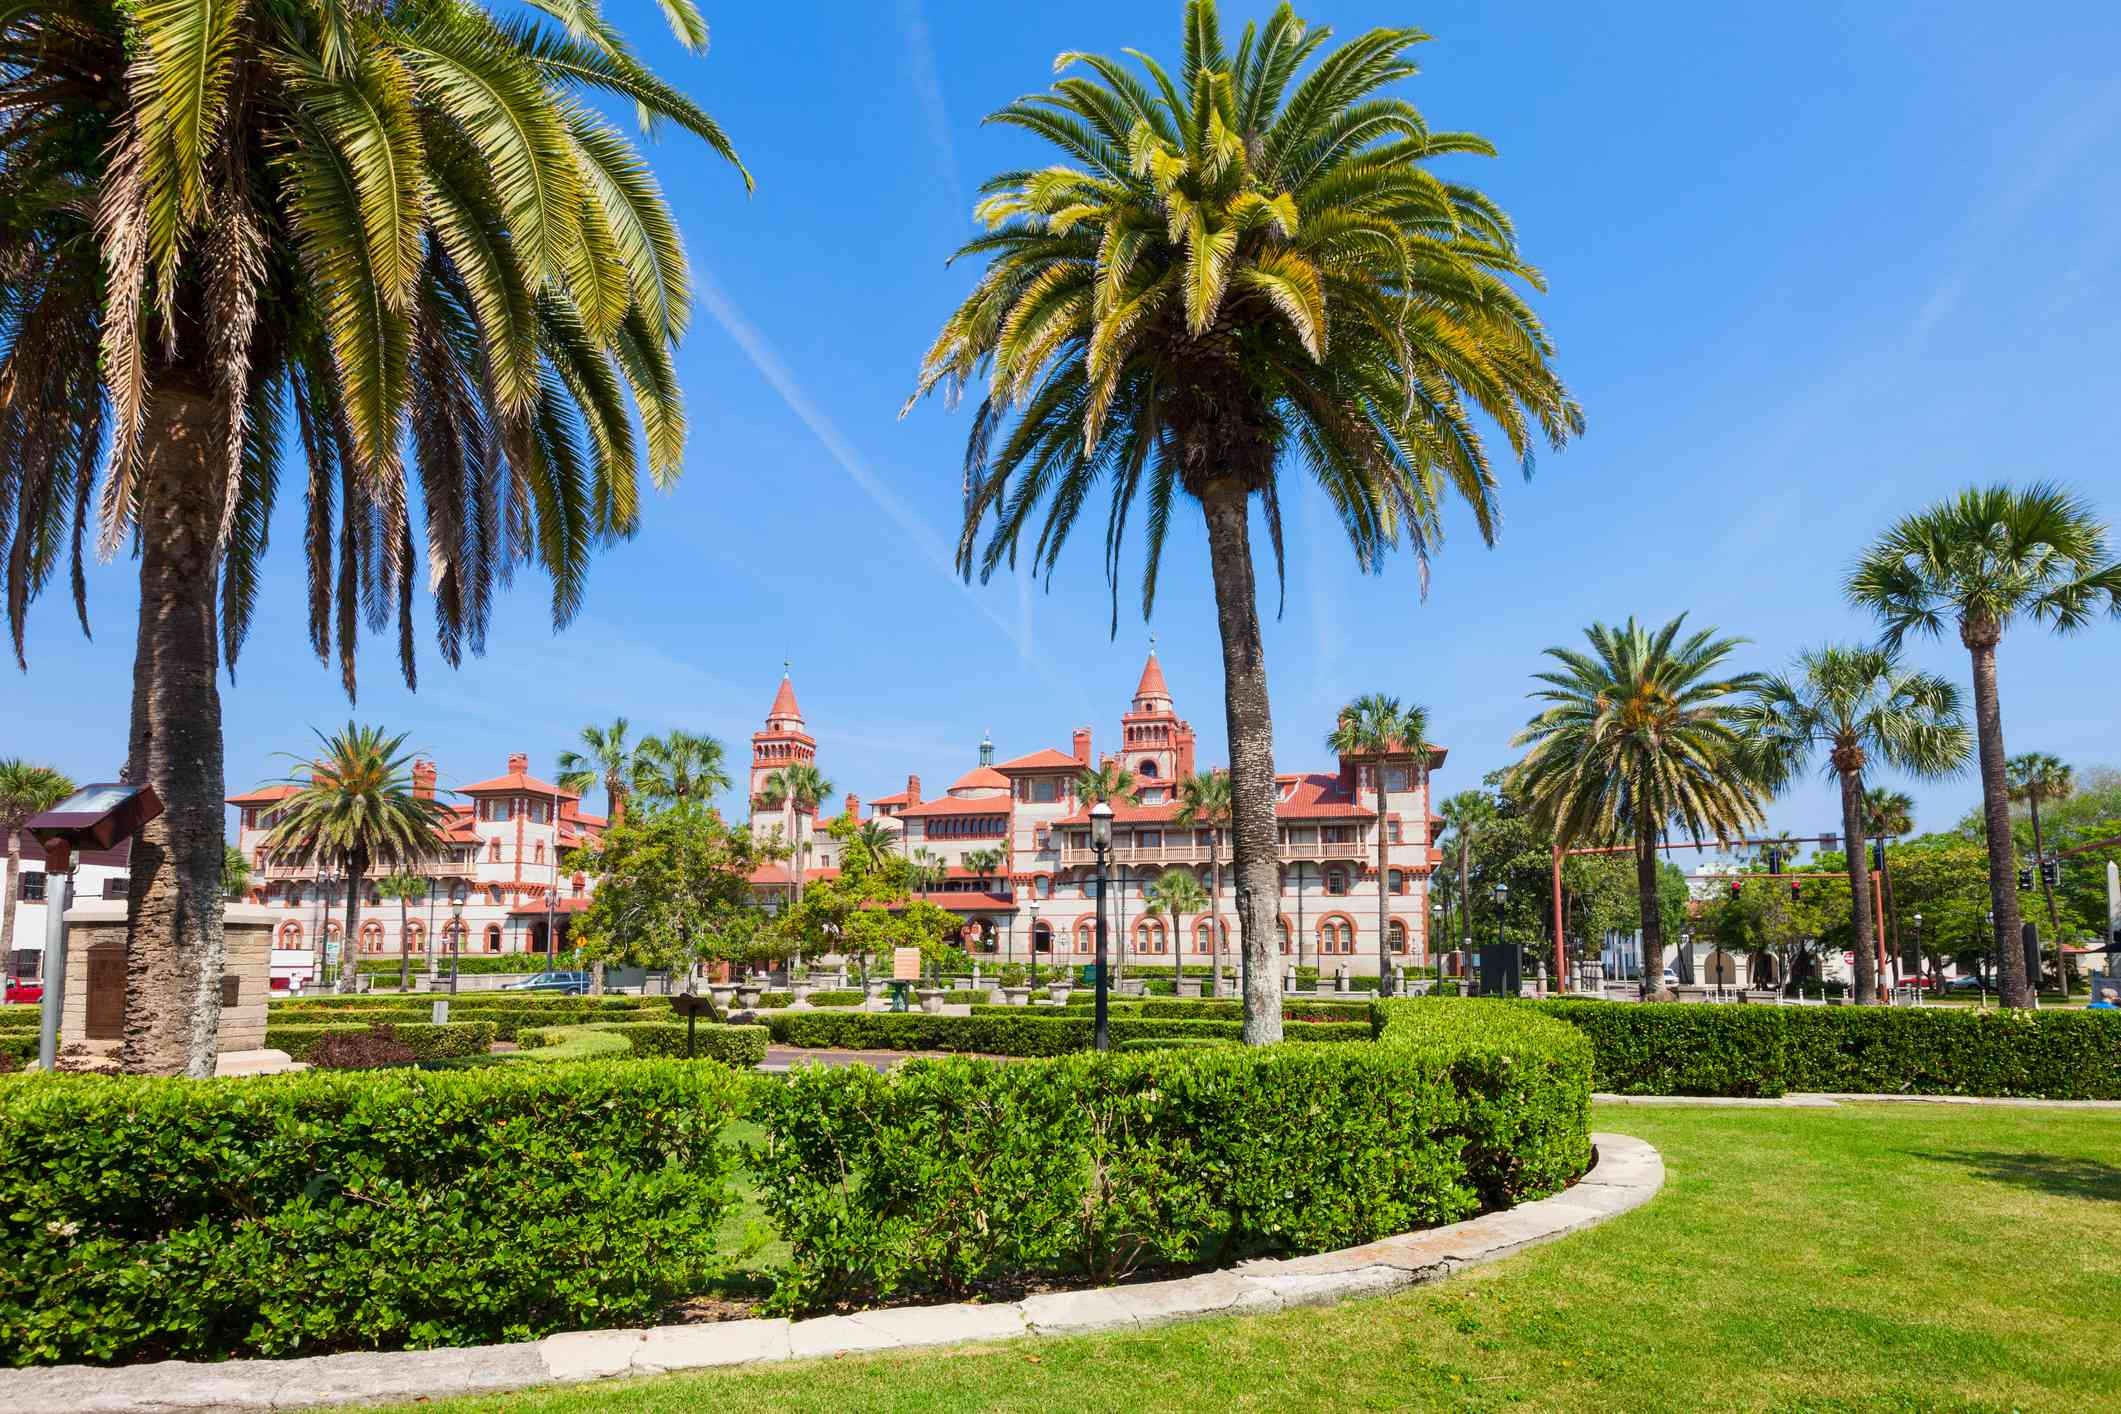 Beautiful park in downtown St Augustine, Florida with the Flagler College main building in the background